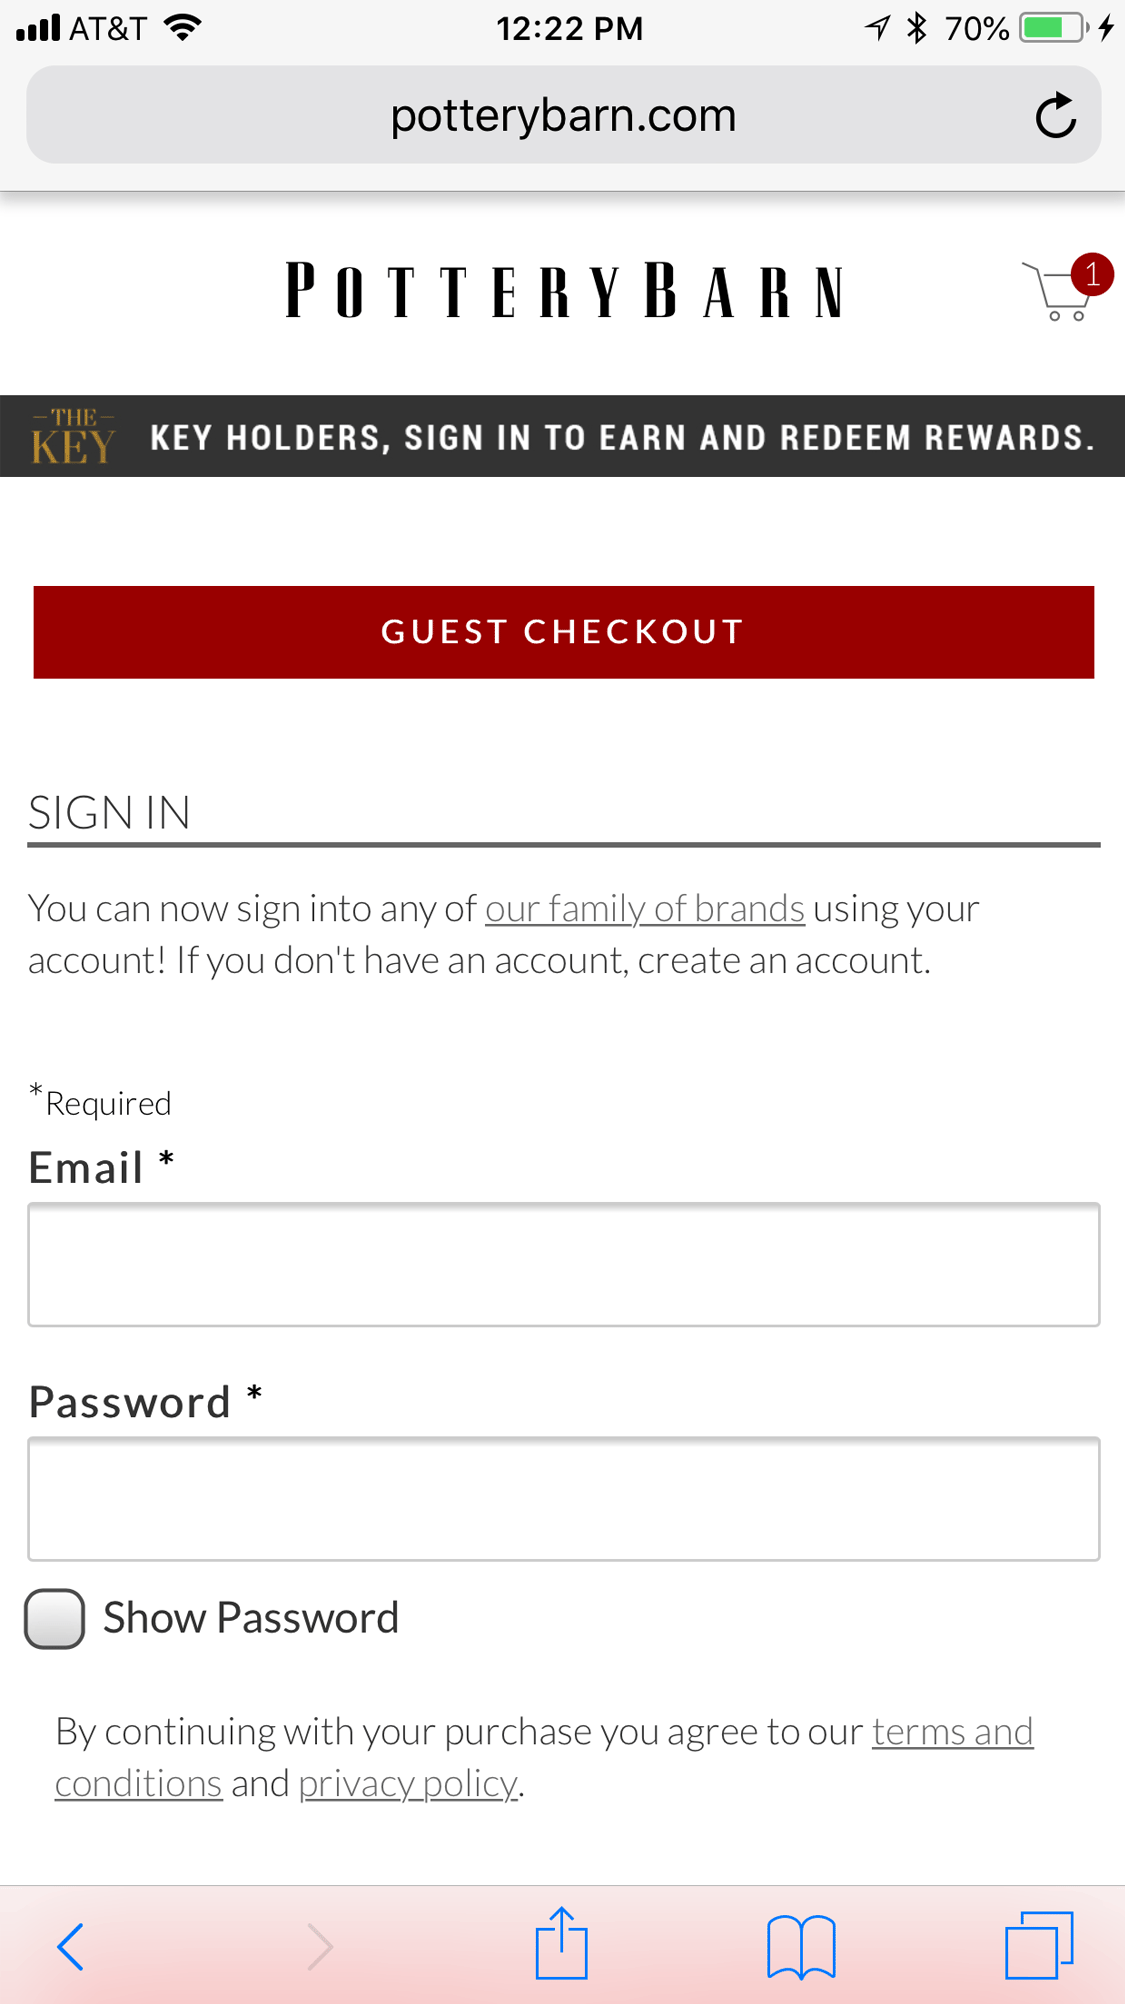 The Mobile Checkout Experience